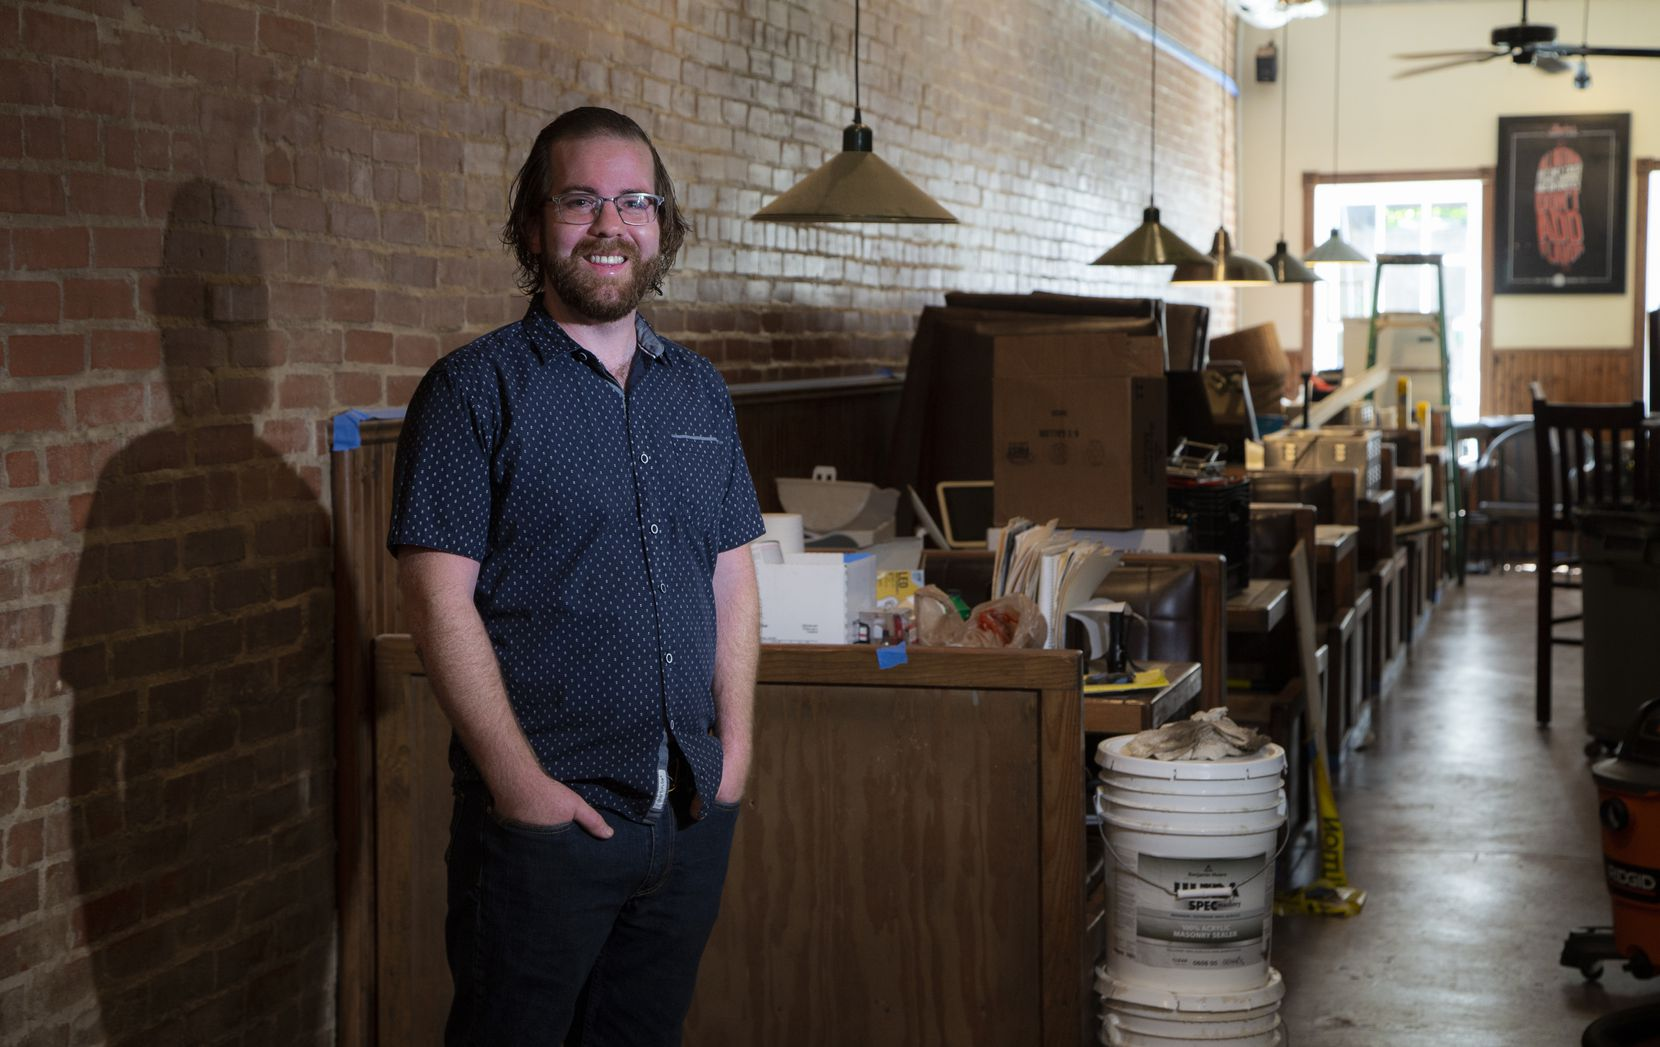 Mark Wootton, General Manager and Chef, poses for a photo inside of Garden Cafe in Old East Dallas, currently under renovations, Saturday, June 19, 2021. (Brandon Wade/Special Contributor)